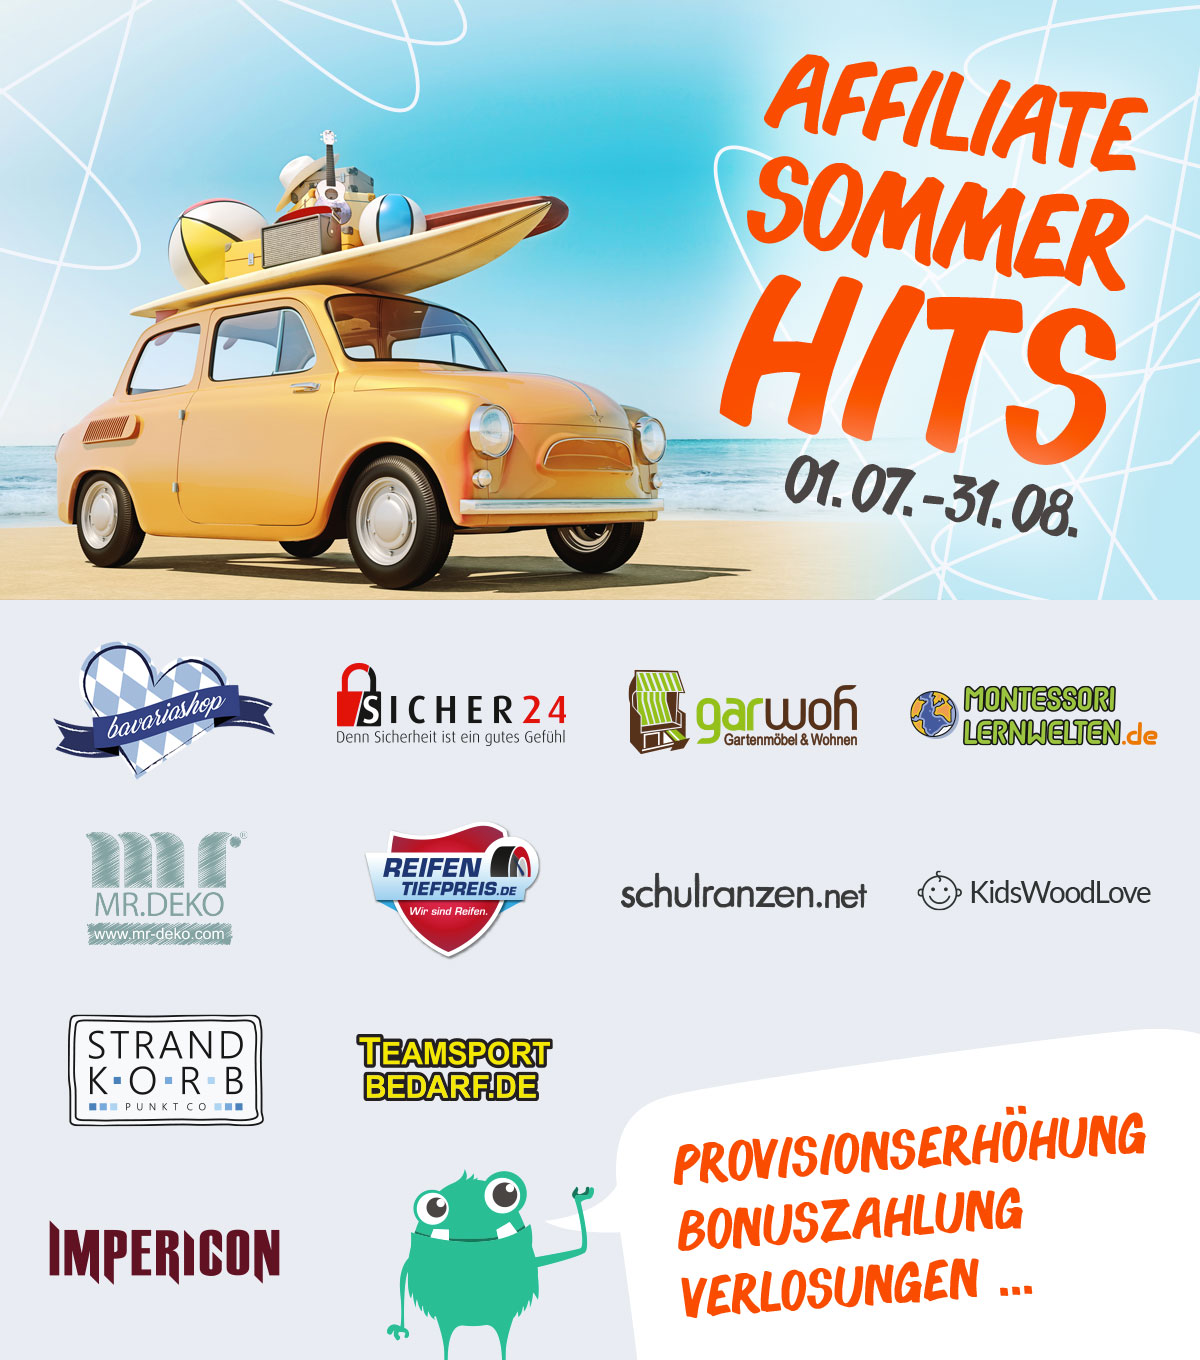 Affiliate Sommerhits 2019